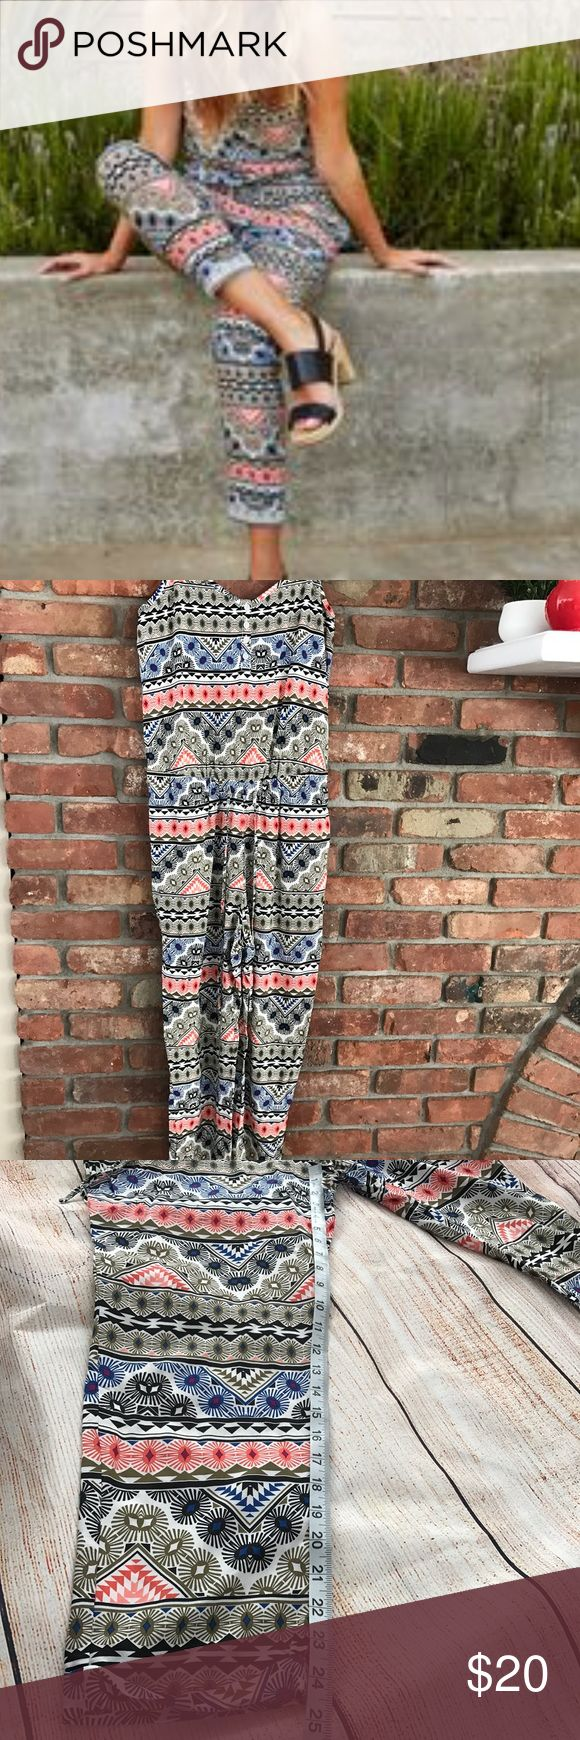 Old Navy Aztec Jumpsuit romper pants size small Beautiful jump suit with elastic waistband and adjustable arm/shoulder straps. Smoke free environment. In excellent used condition. Old Navy Pants Jumpsuits & Rompers